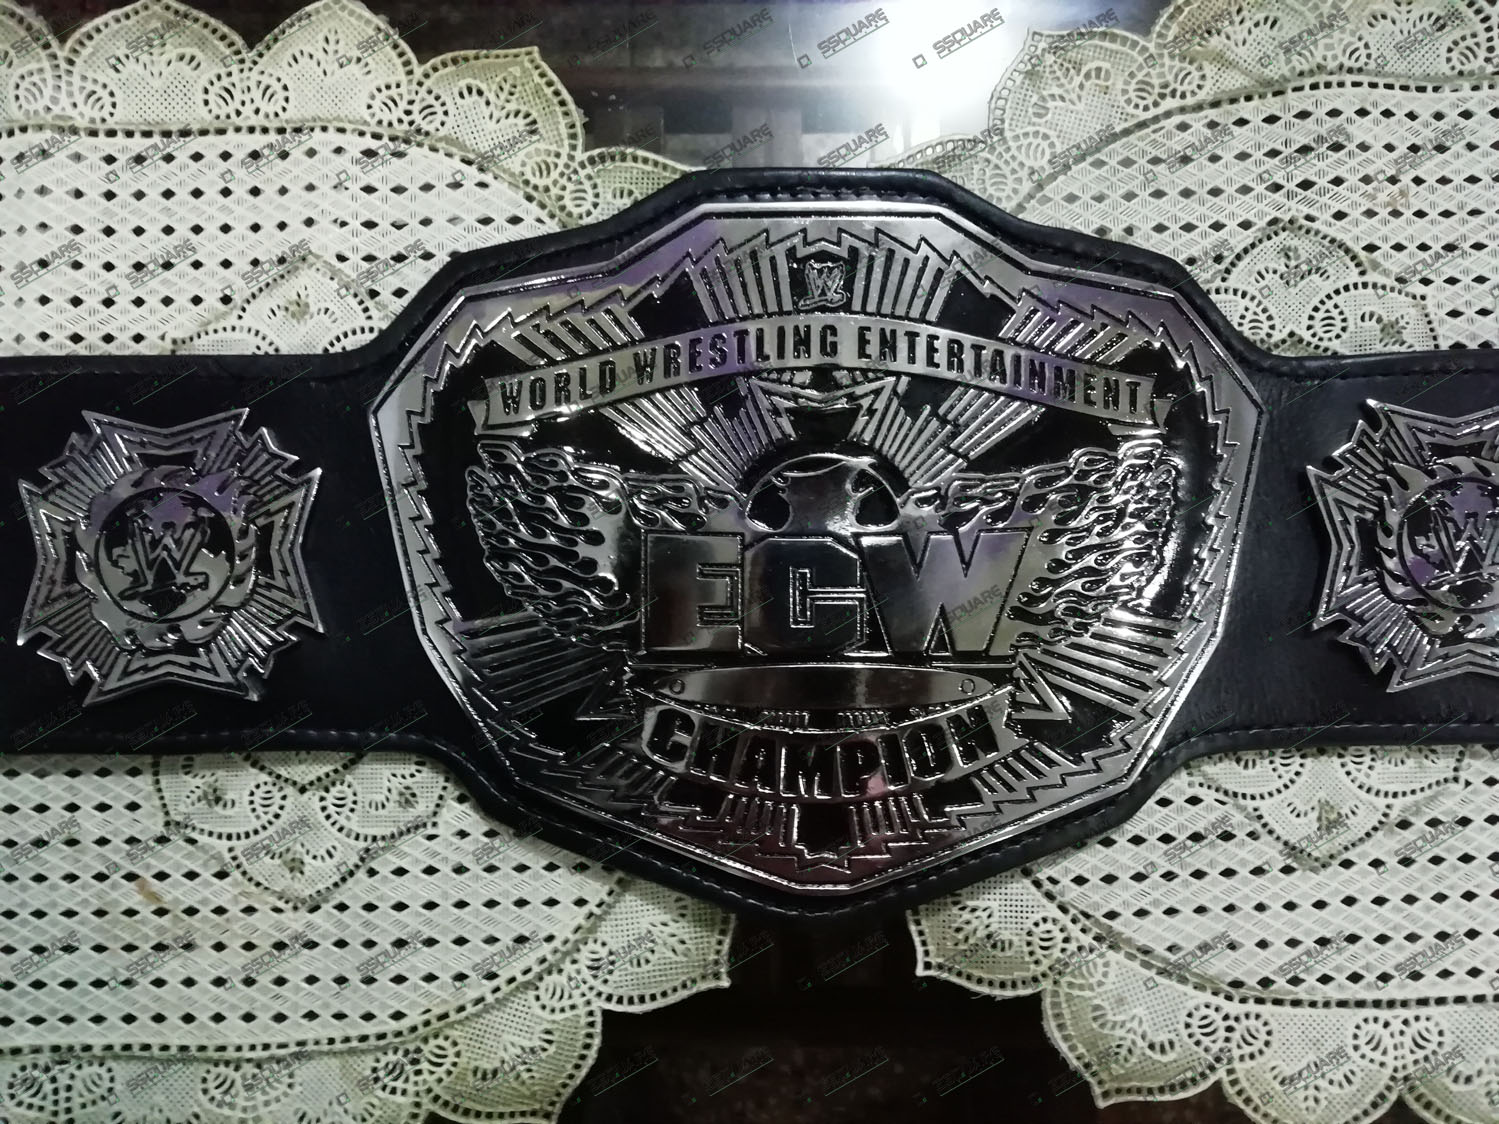 ECW World Wrestling Entertainment Champion replica belt